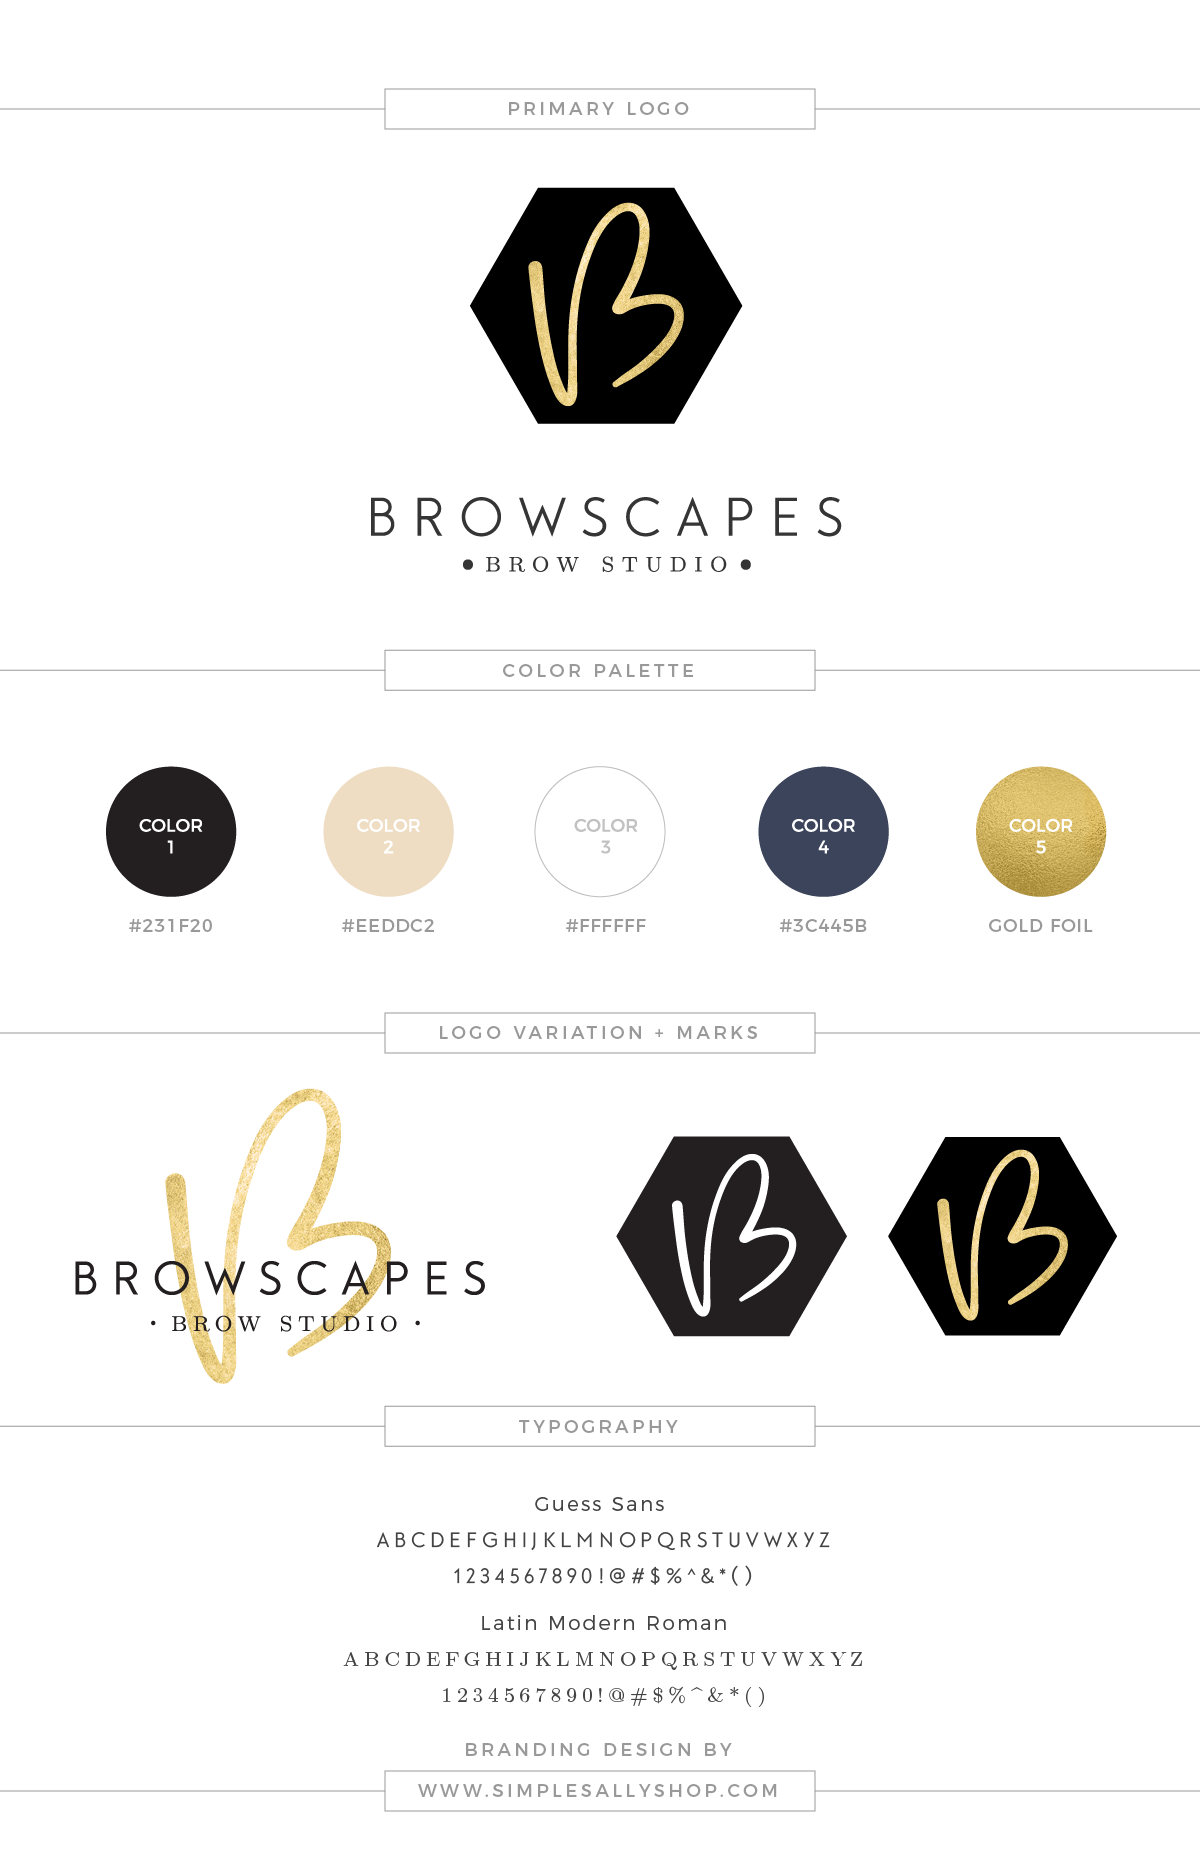 Small Business Logo Design Browscapes Brow Studio